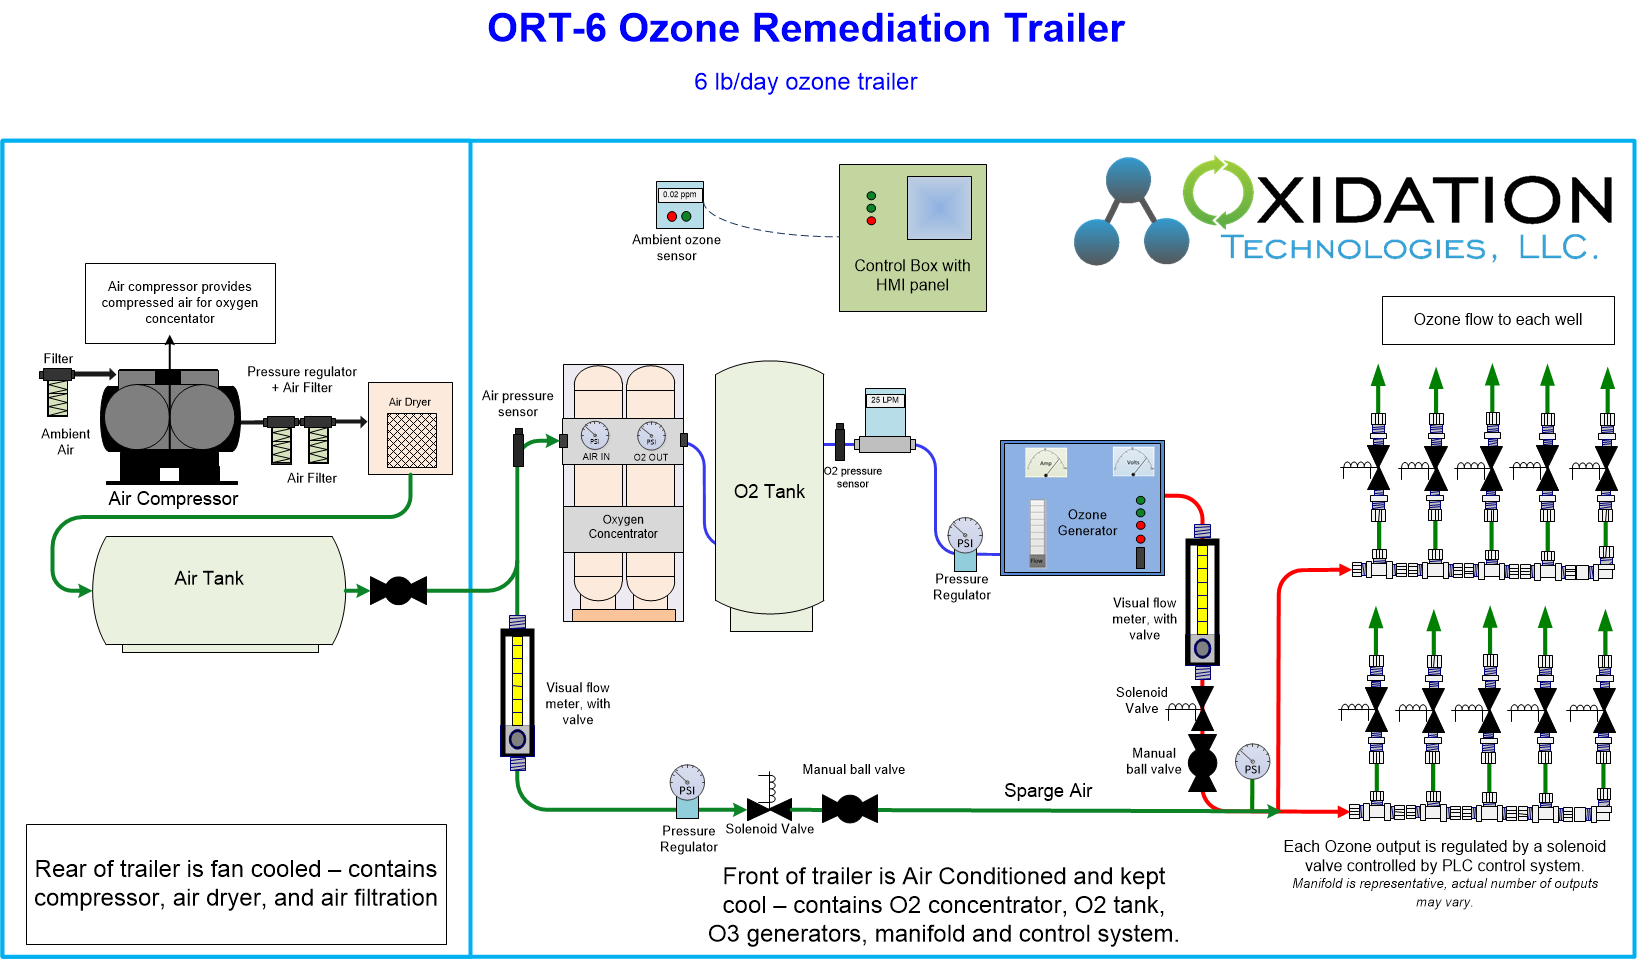 6 lb/day ozone remediation trailer diagram